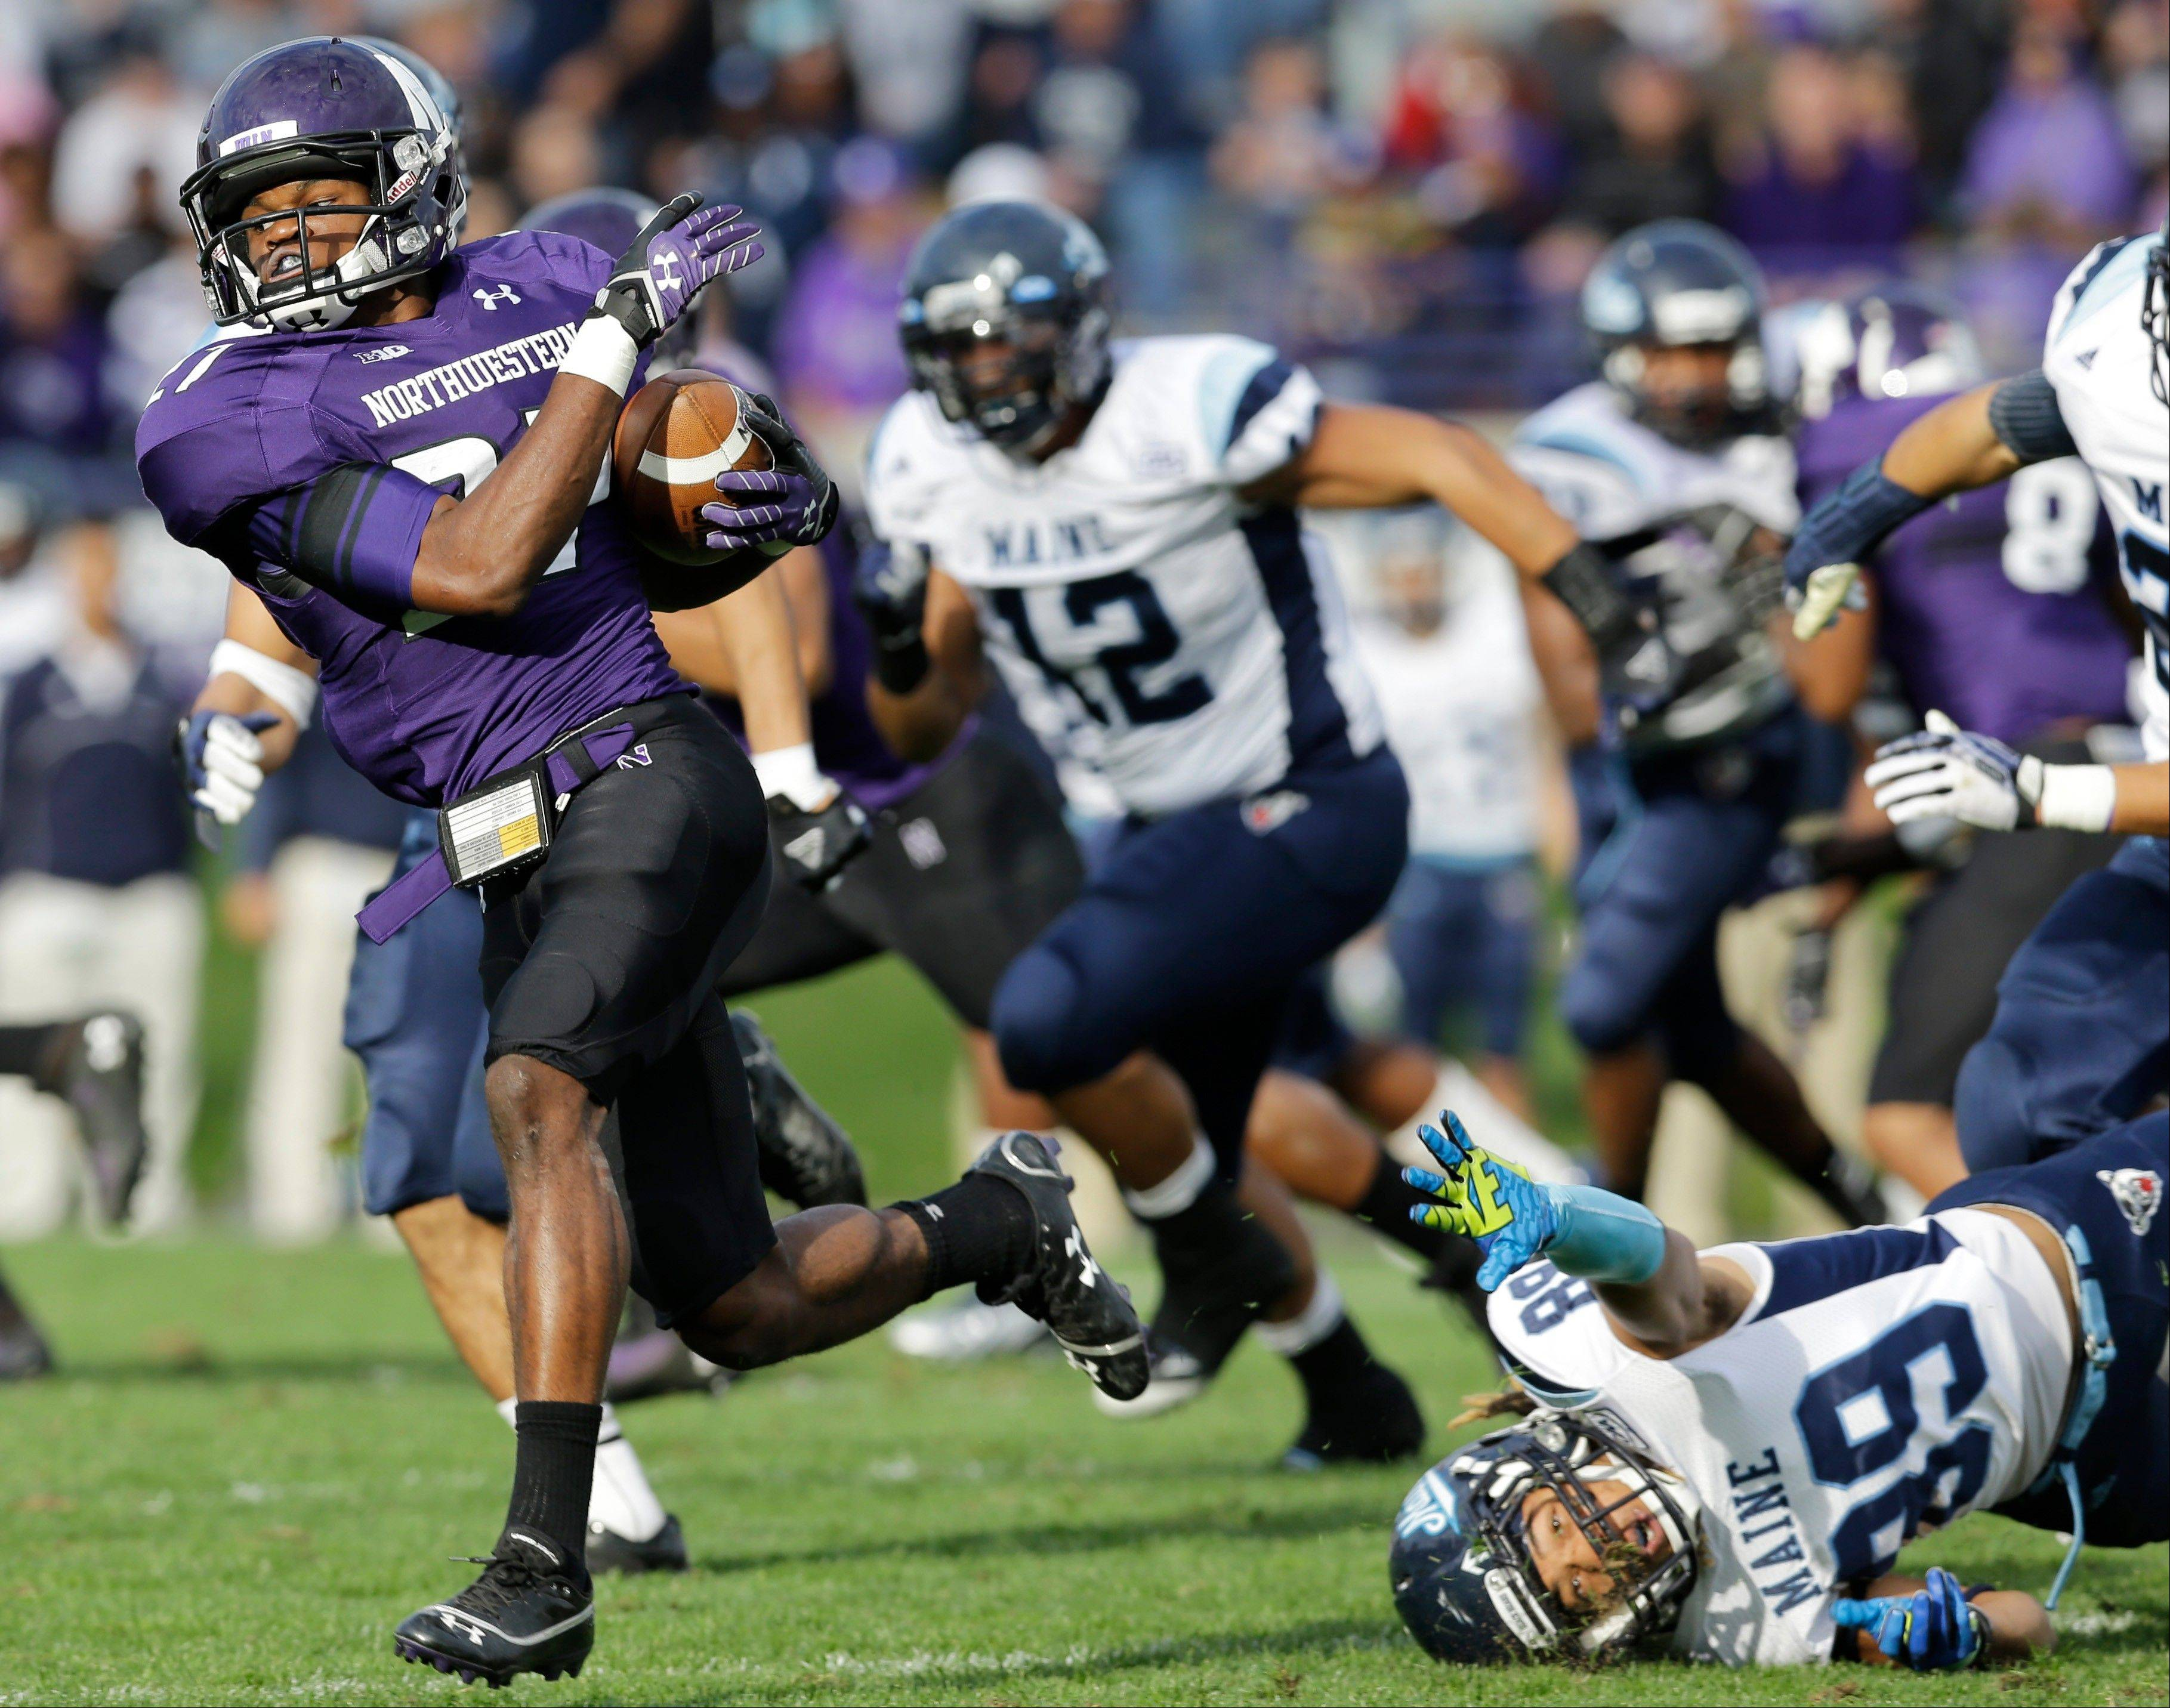 Northwestern cornerback Matthew Harris runs with the ball past Maine wide receiver Arthur Williams (89) during the second half of Saturday's game in Evanston.